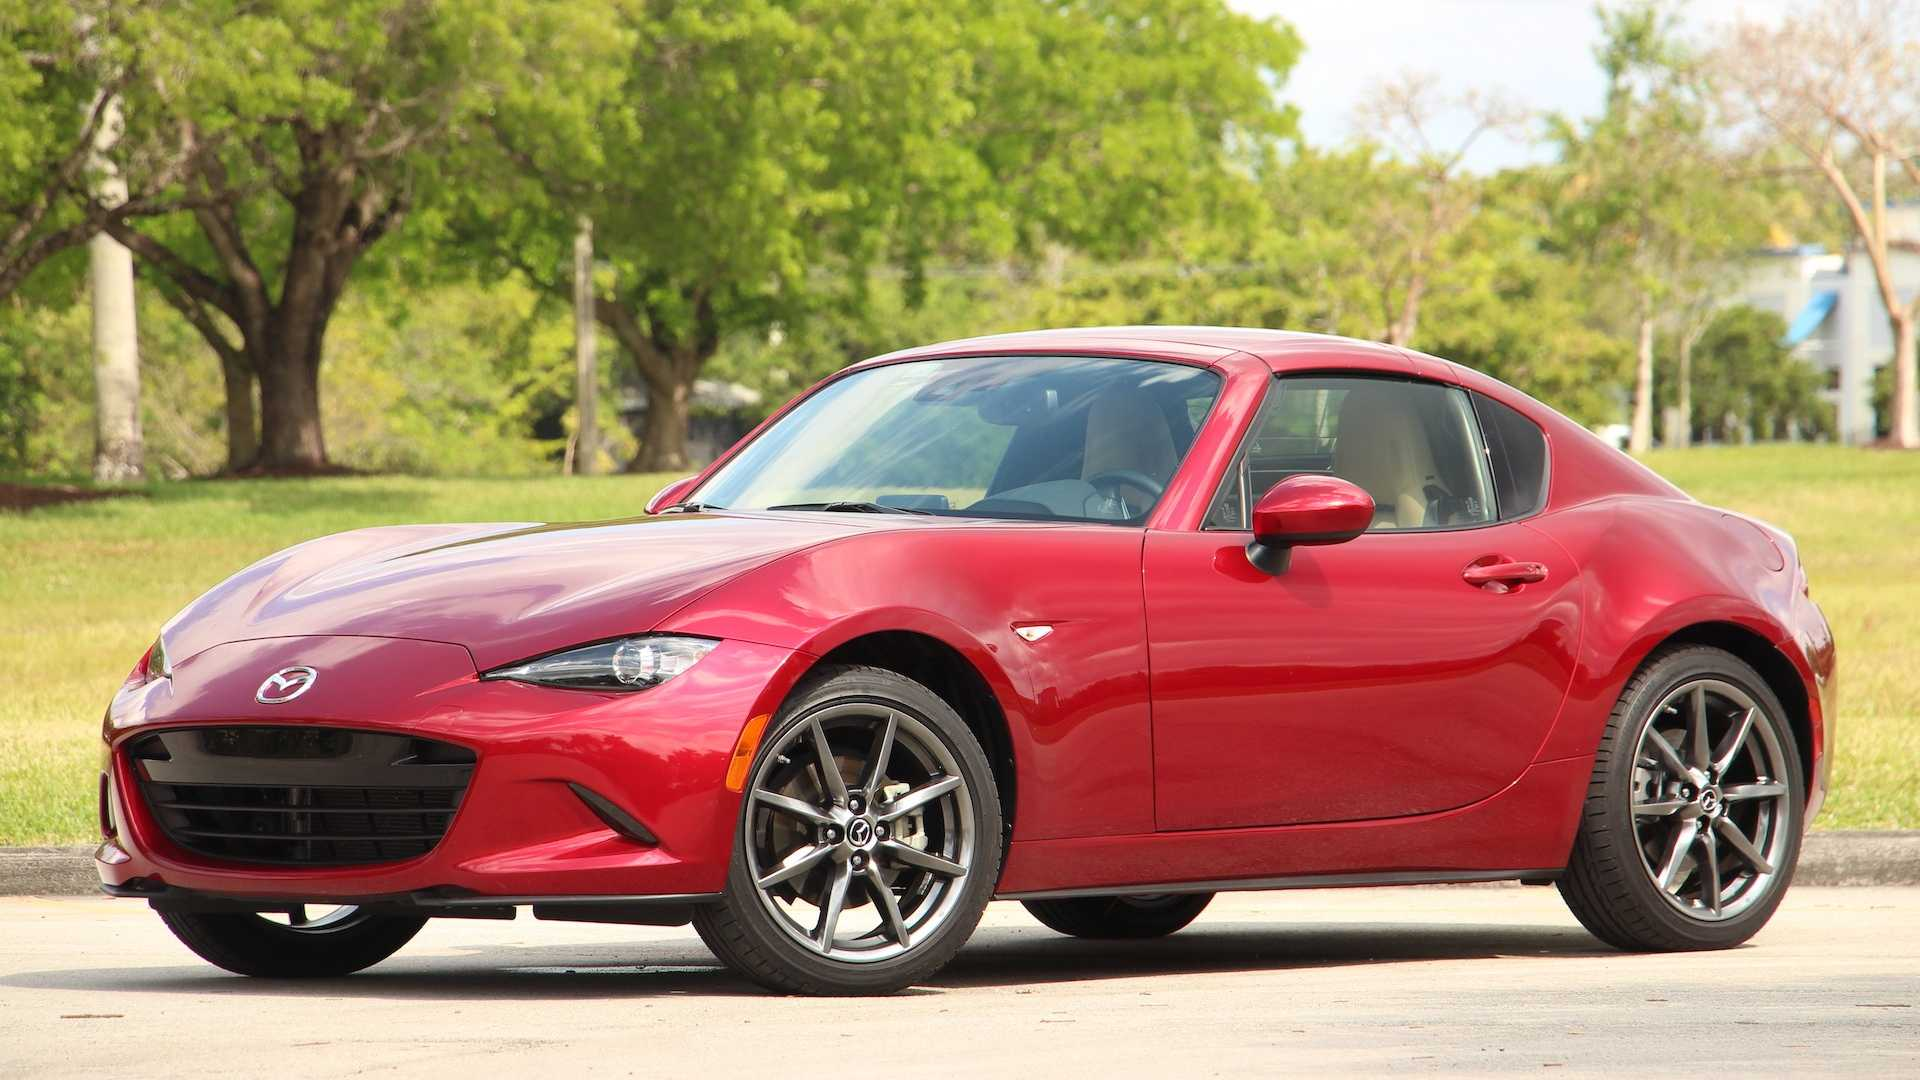 2020 Mazda Mx 5 Miata Reportedly Sees Price Increase Of Up To 1 090